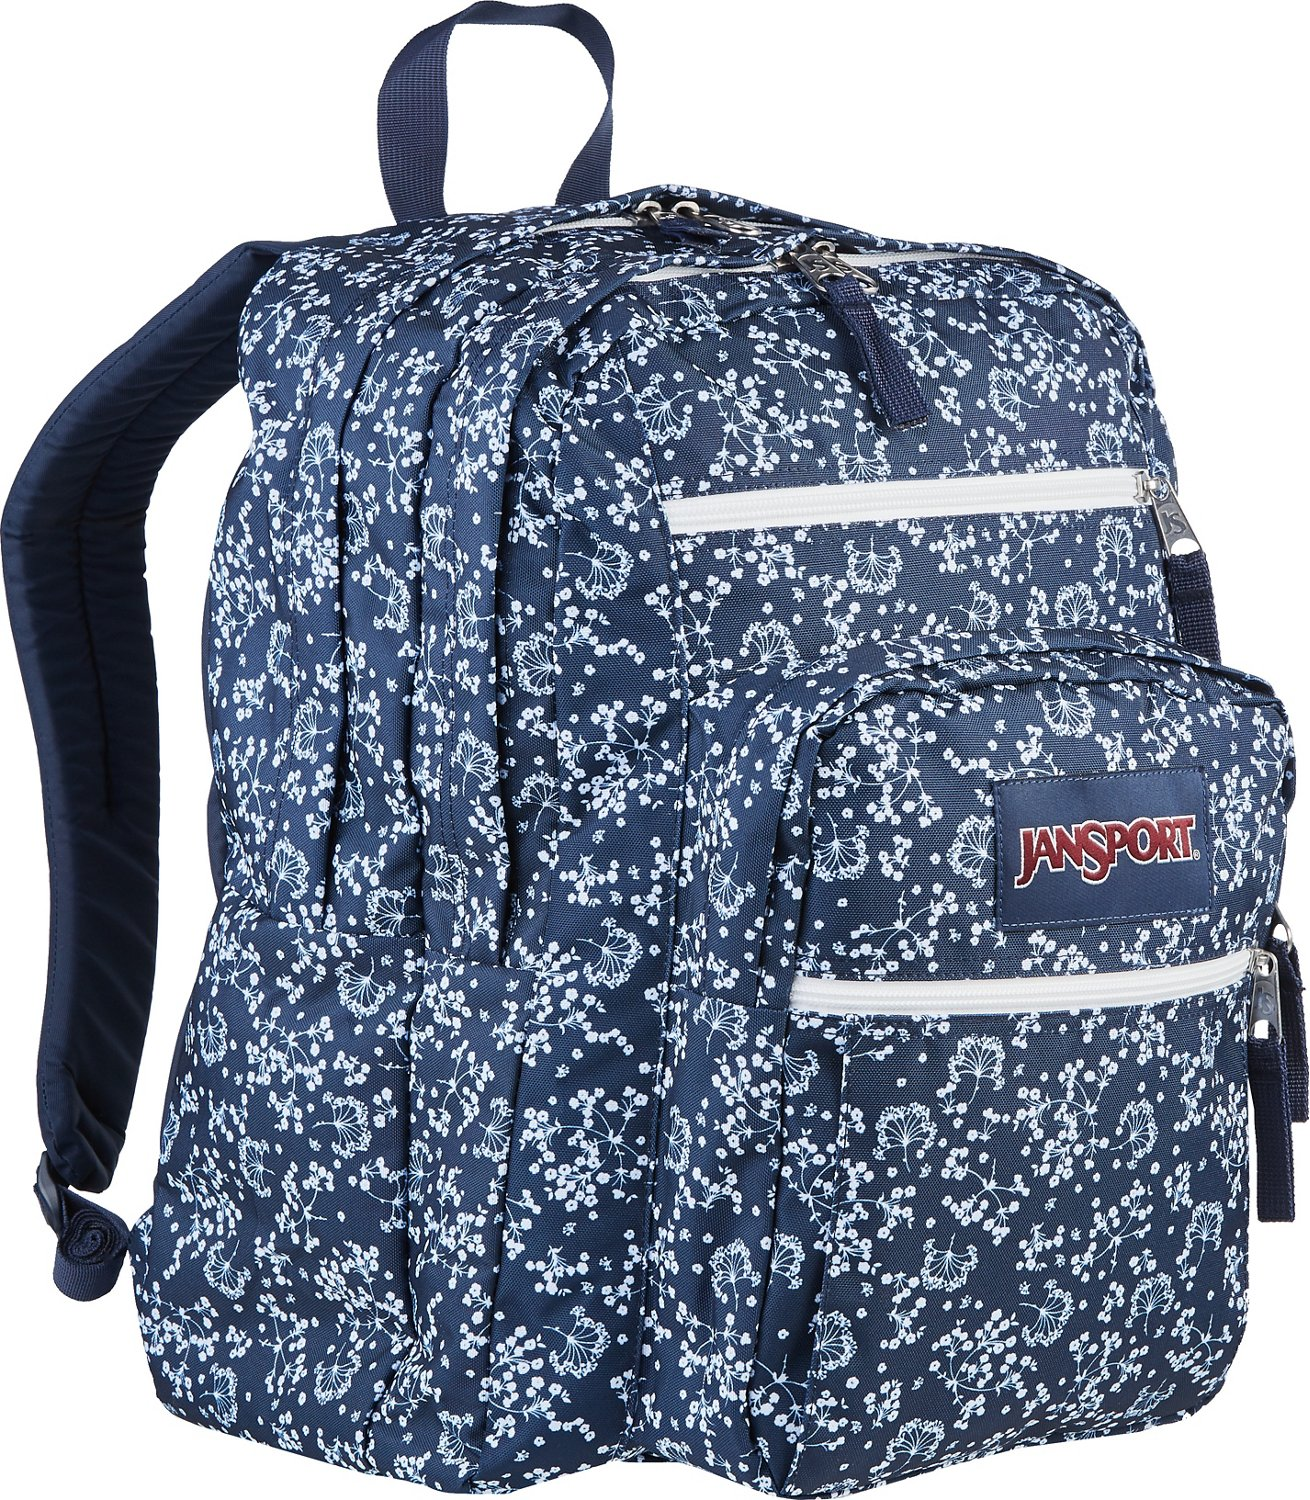 8b531adcb7 Display product reviews for JanSport Big Student Backpack